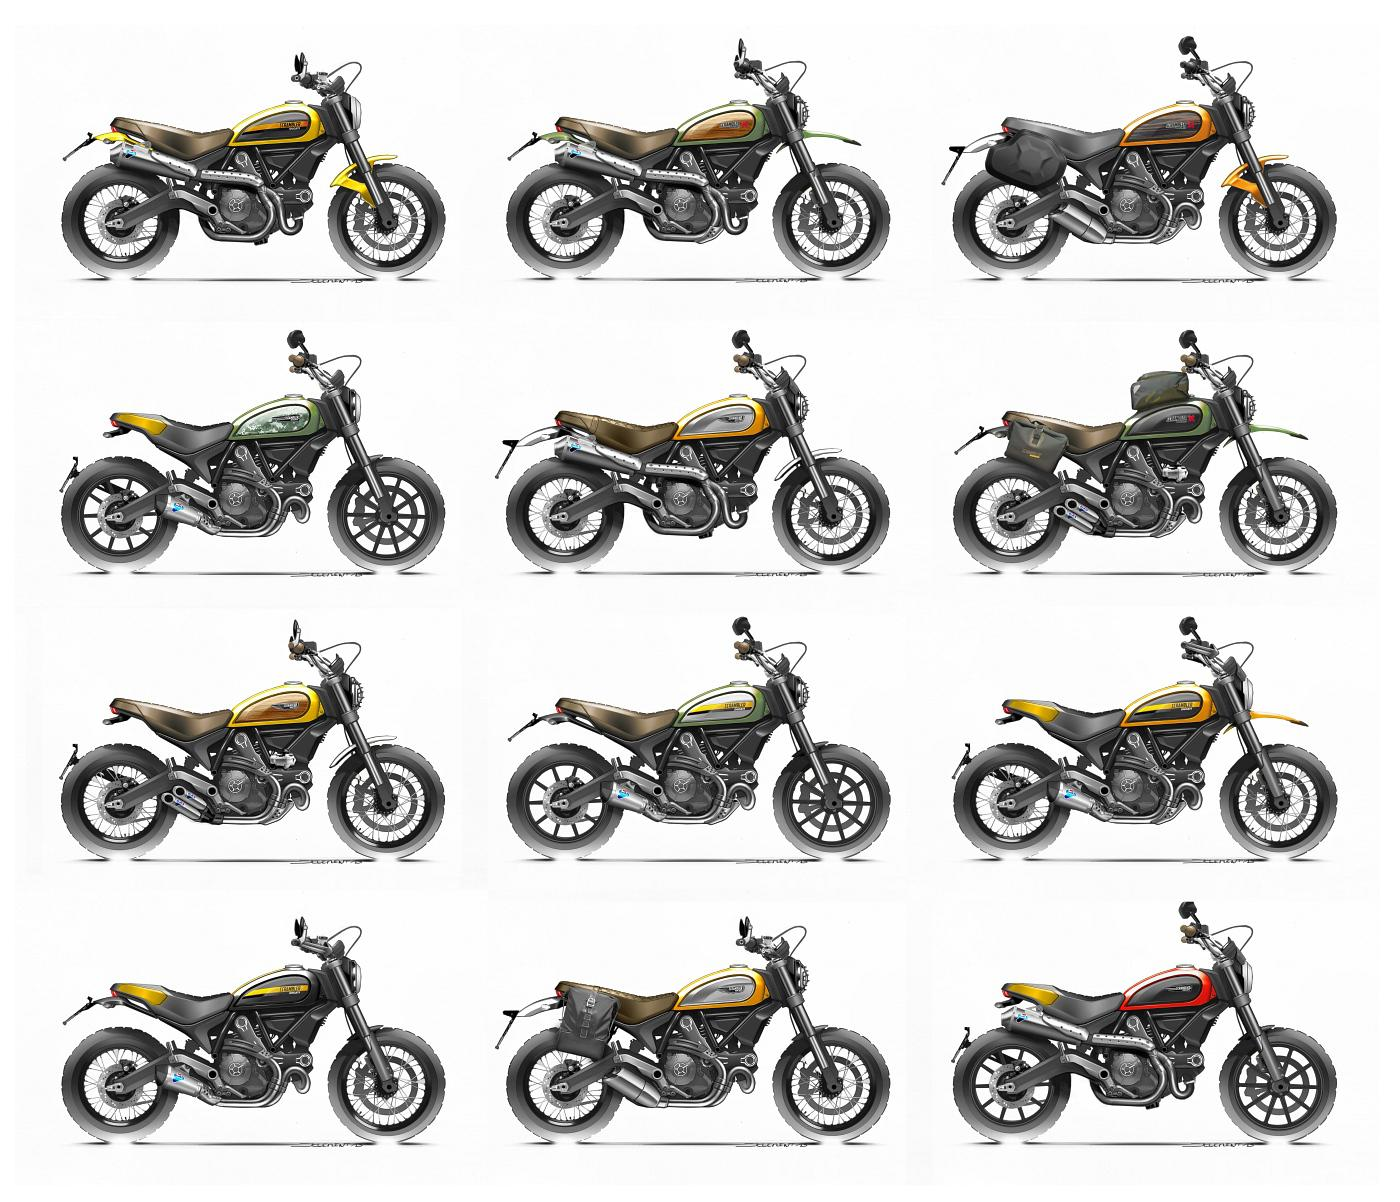 ducati scrambler 2015 erster test motorrad fotos. Black Bedroom Furniture Sets. Home Design Ideas